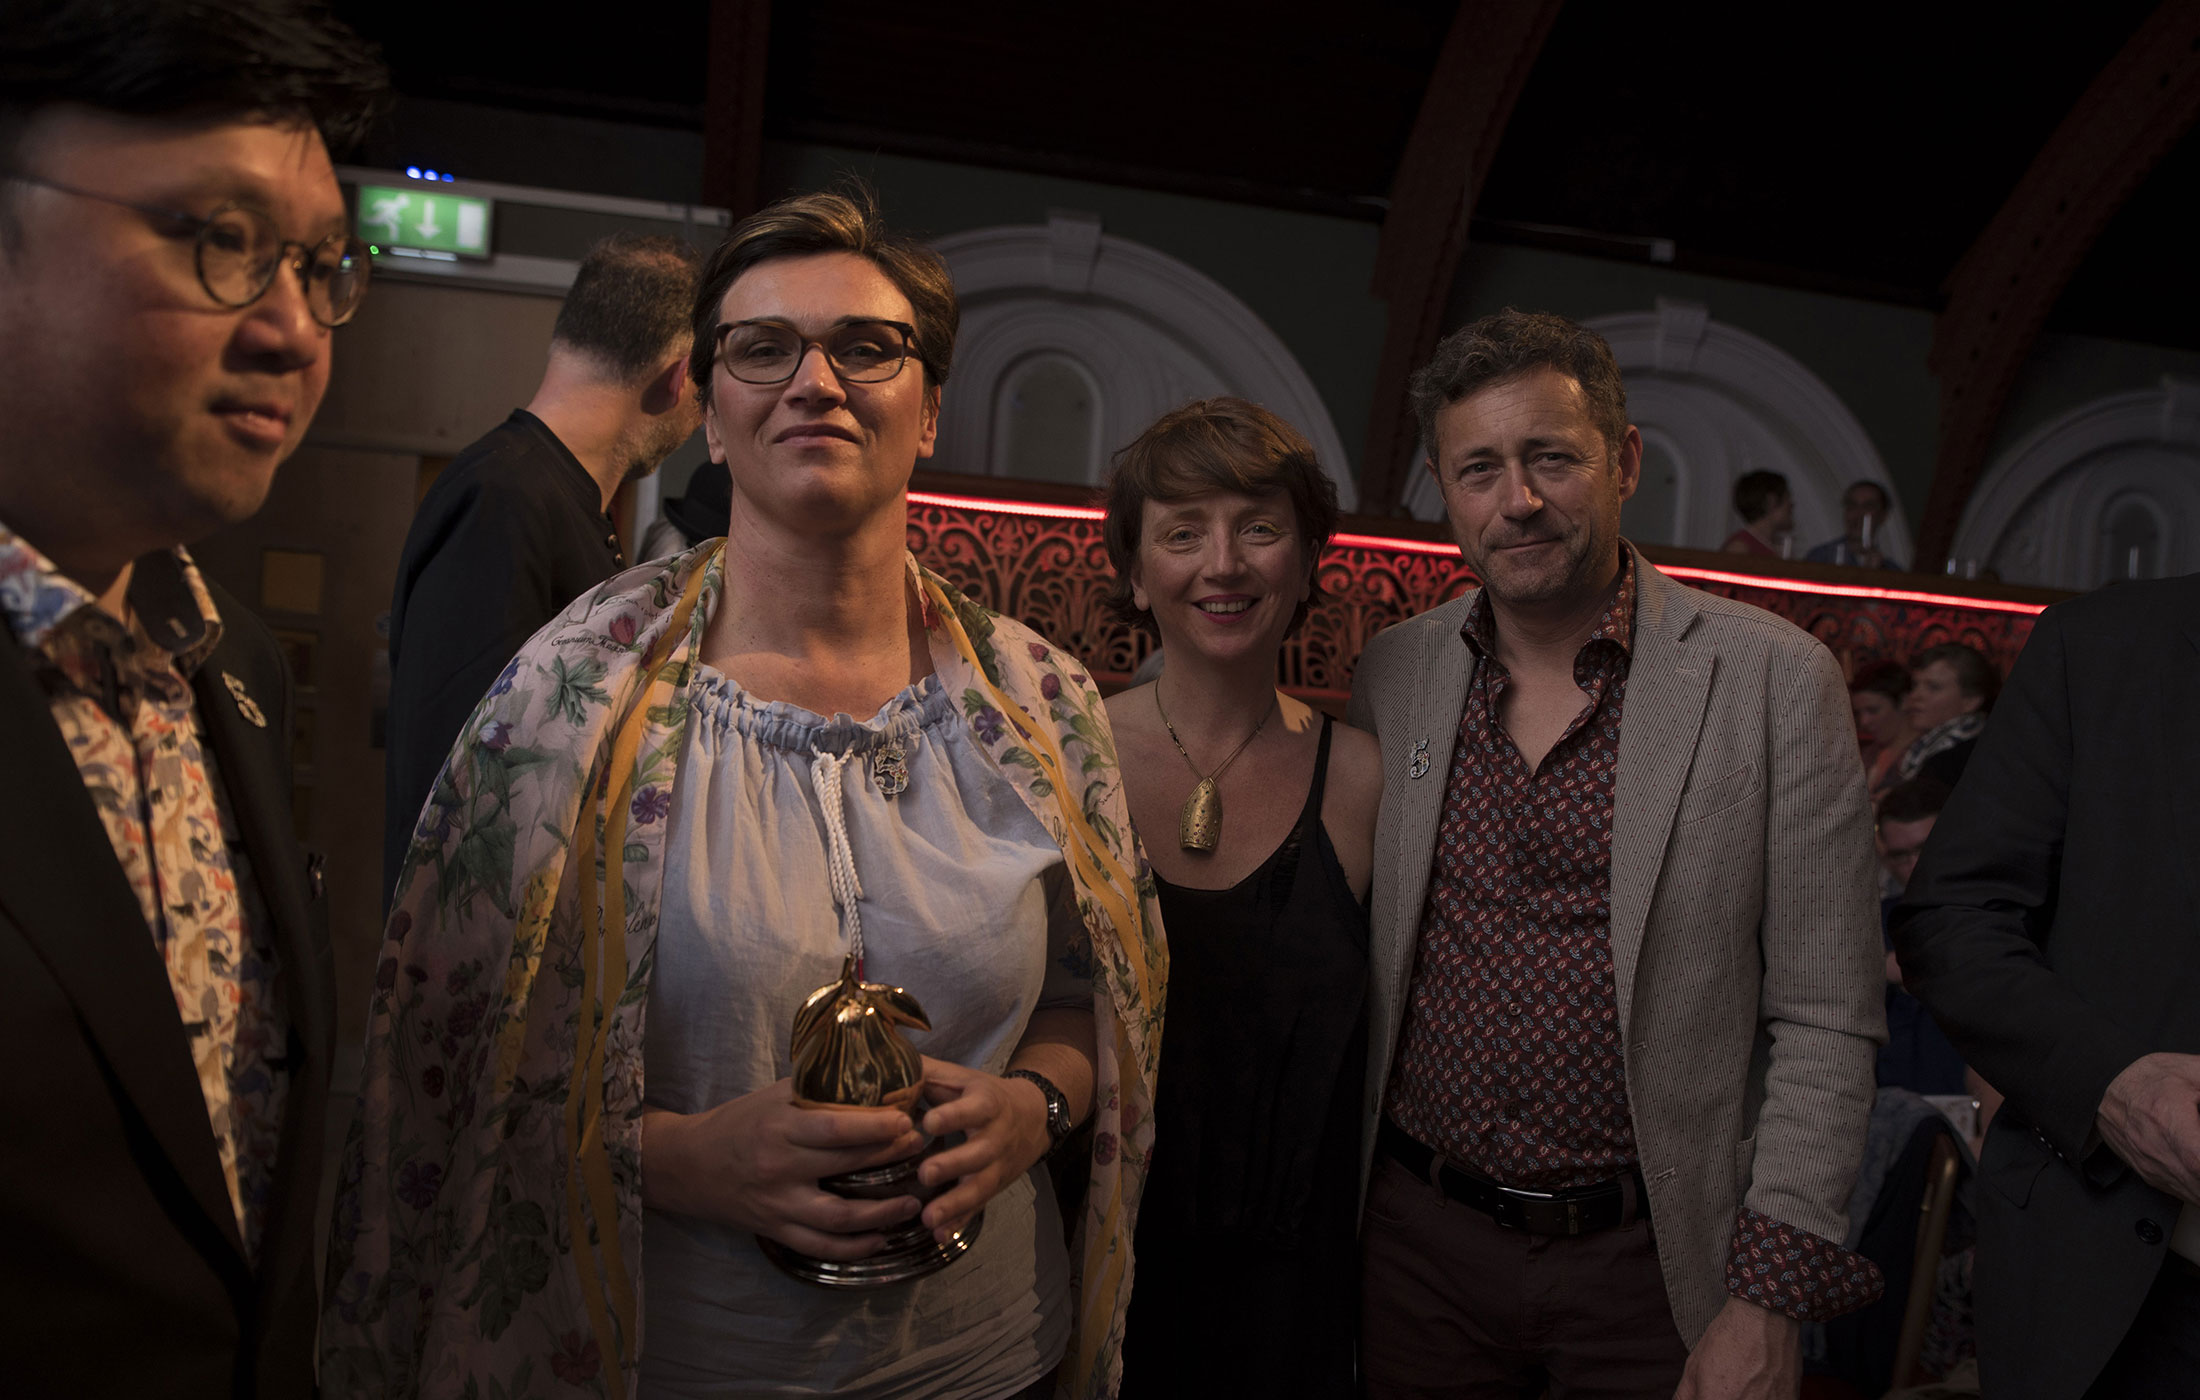 Art and Olfaction Awards, Photo by Marina Chichi